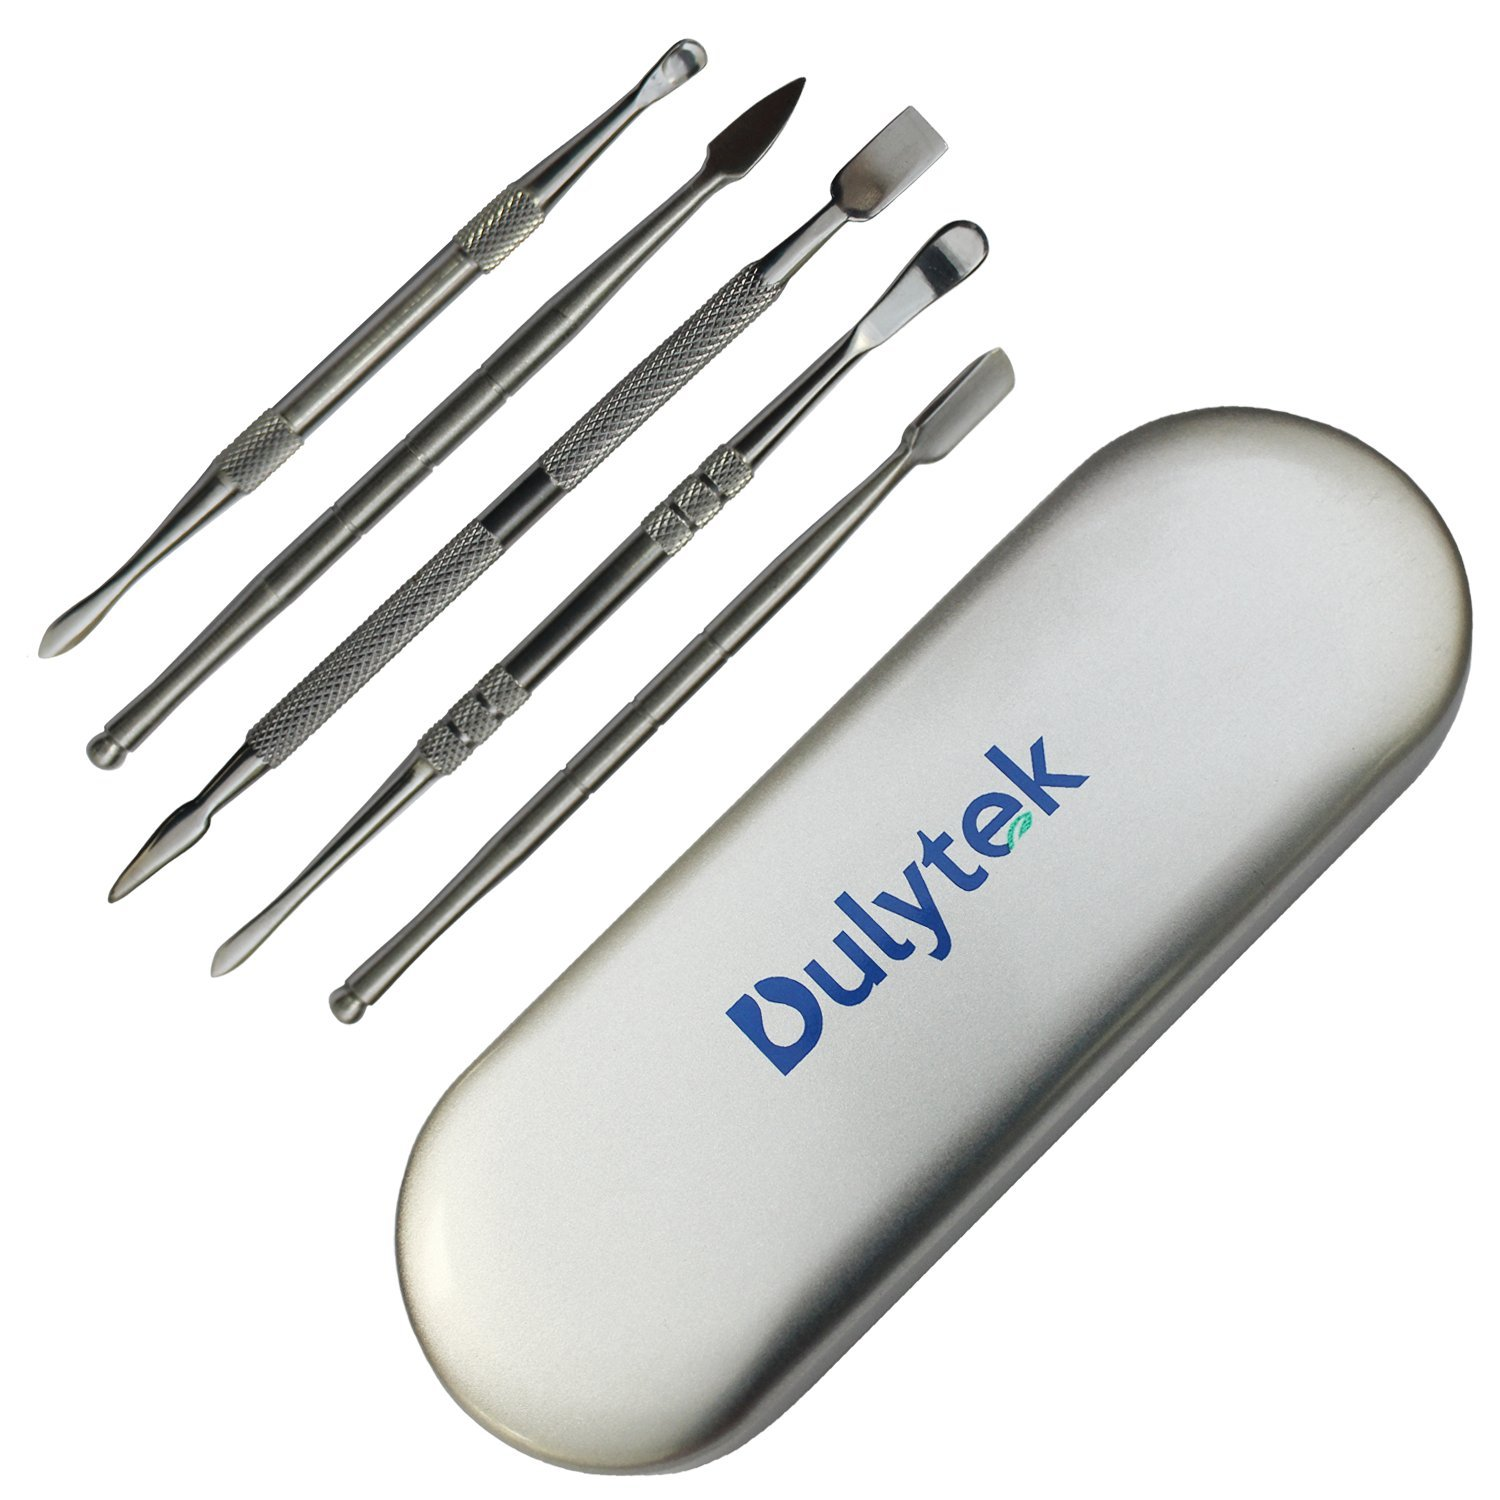 Dulytek 6-Piece Rosin/Wax Carving & Collecting Tool Set